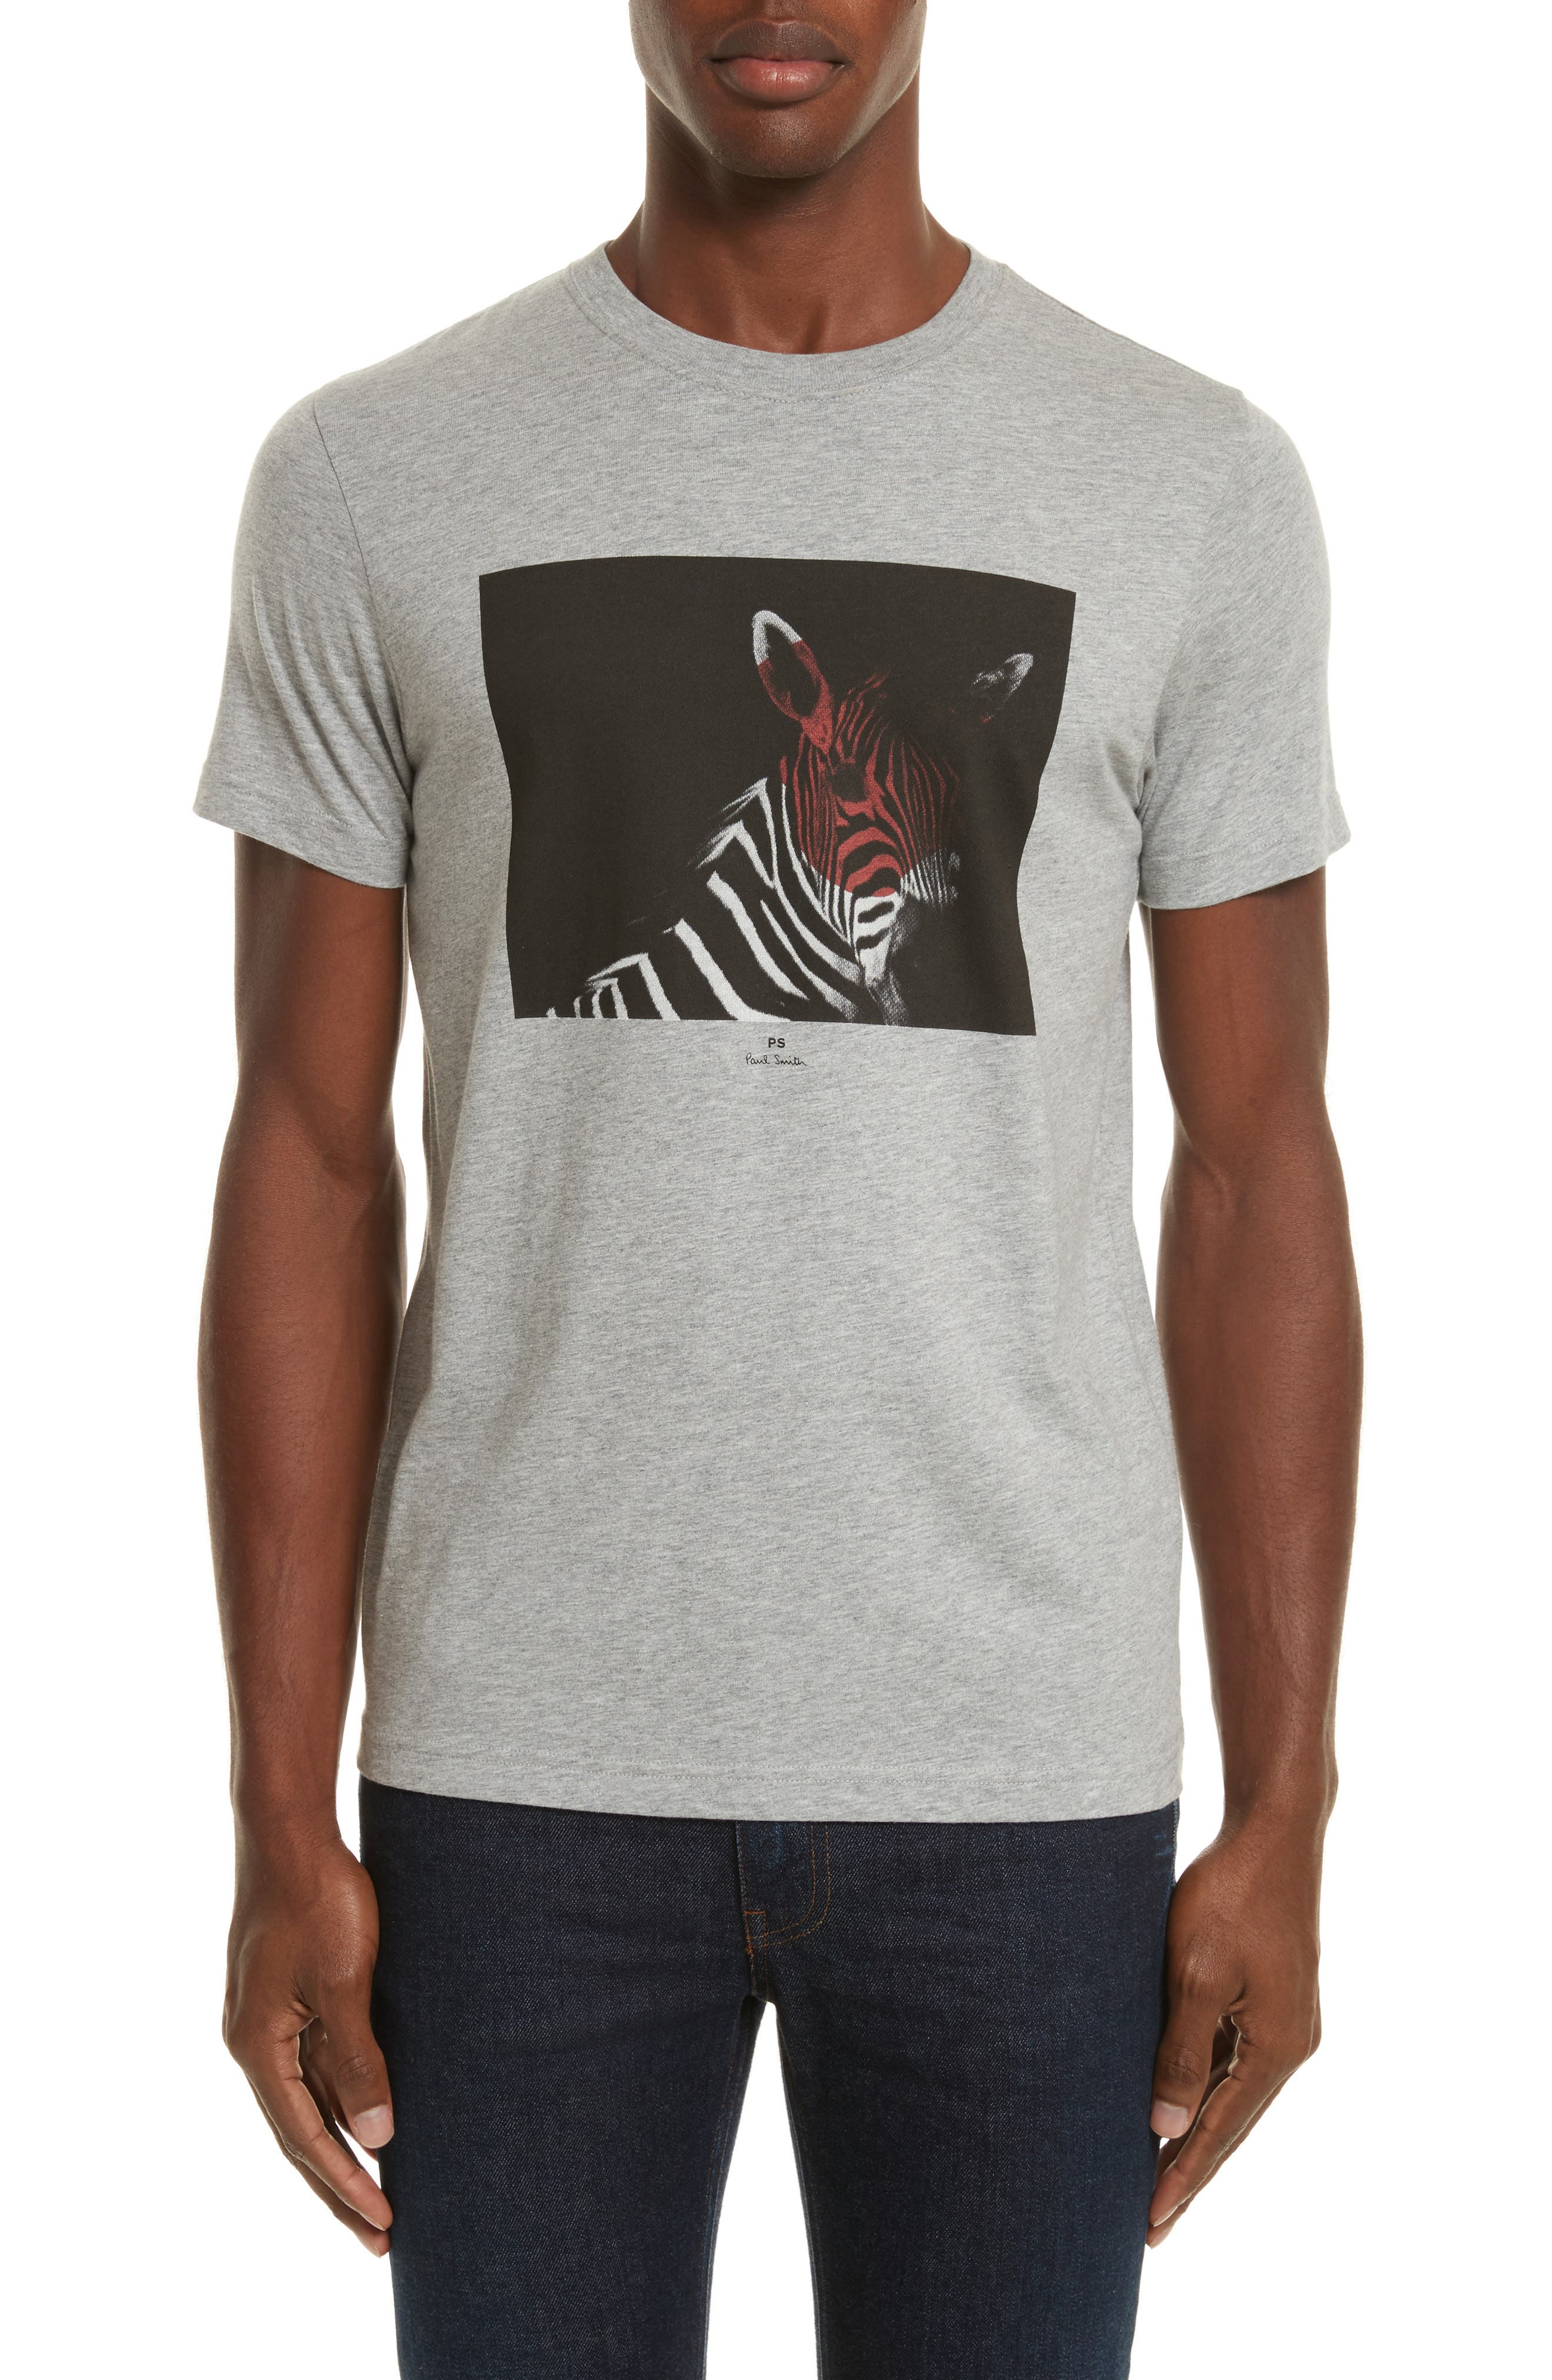 Main Image - PS Paul Smith Large Zebra Graphic T-Shirt